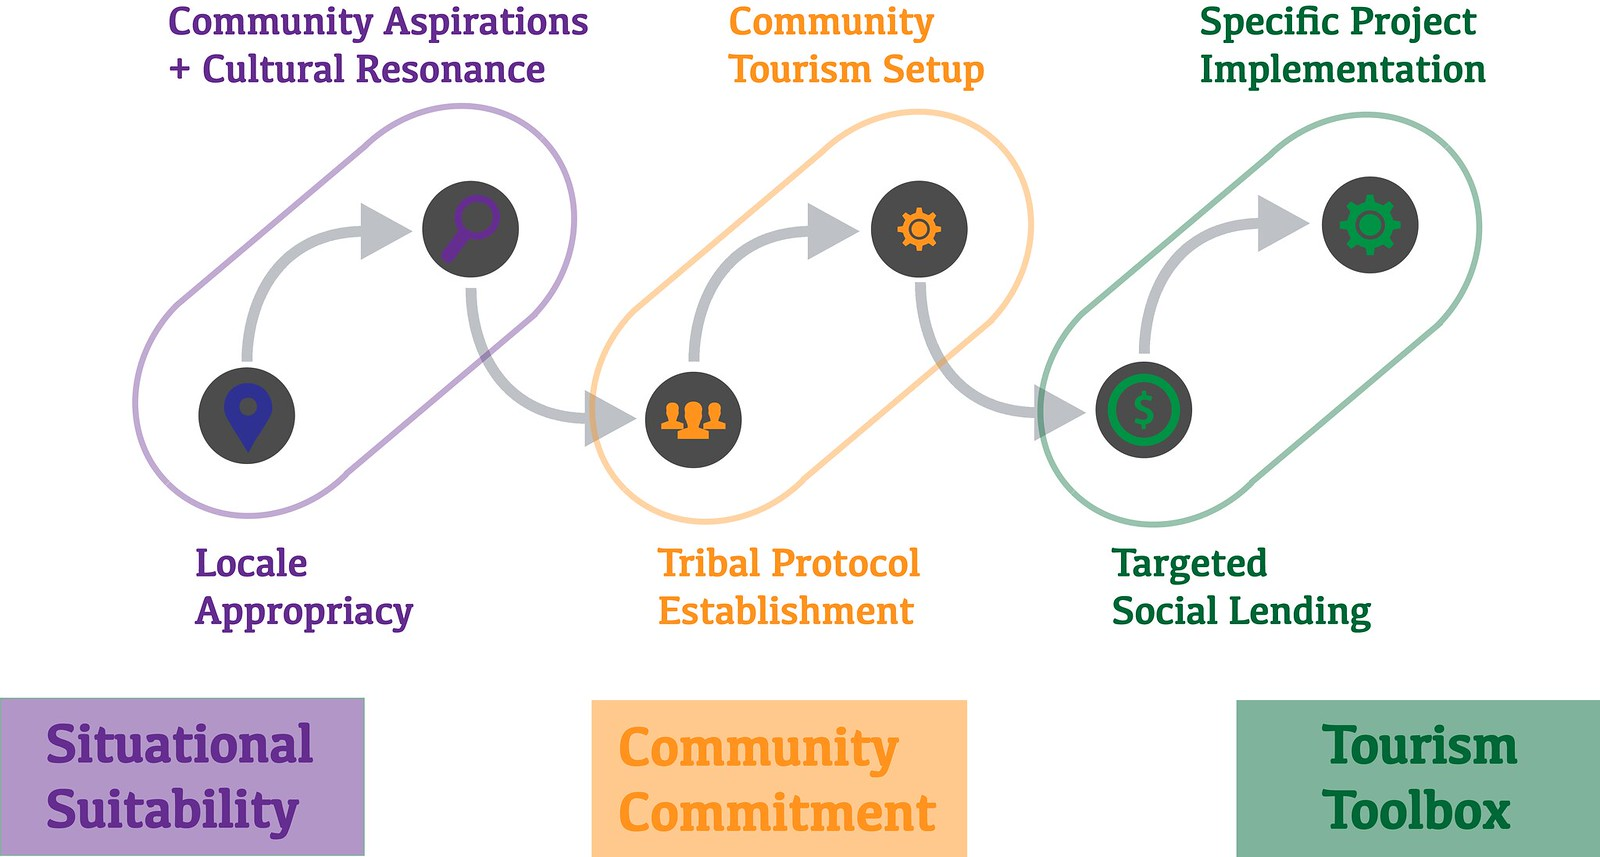 The Tourism Toolbox procedure set down in a graphic flowchart, starting with initial mentoring of island communities, through to the development of tourism assets